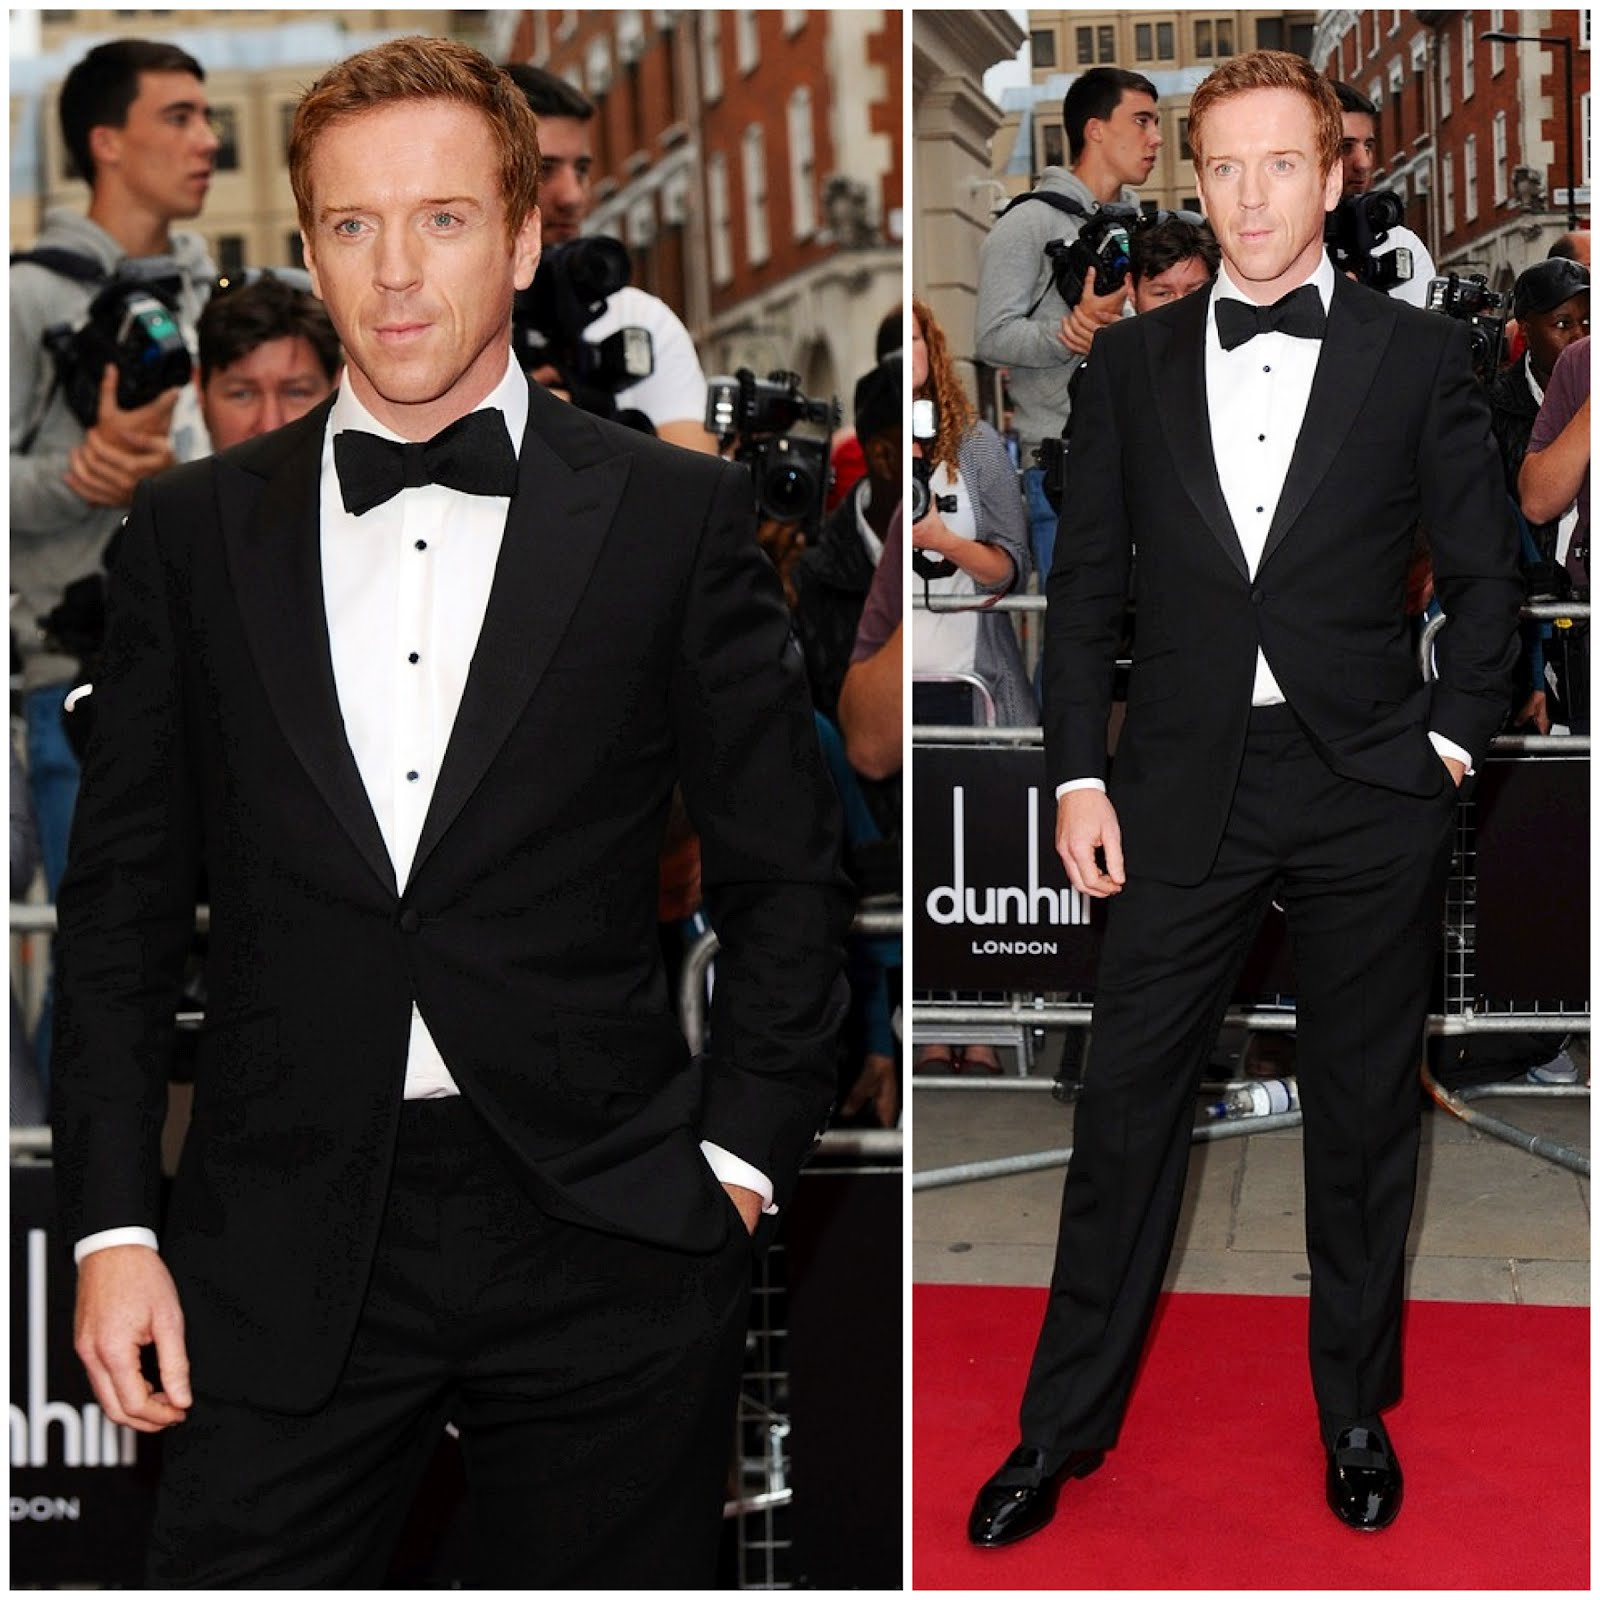 00o00 London Menswear Blog Actor Damian Lewis attends the GQ Men of the Year Awards 2012 at The Royal Opera House on September 4, 2012 in London, England